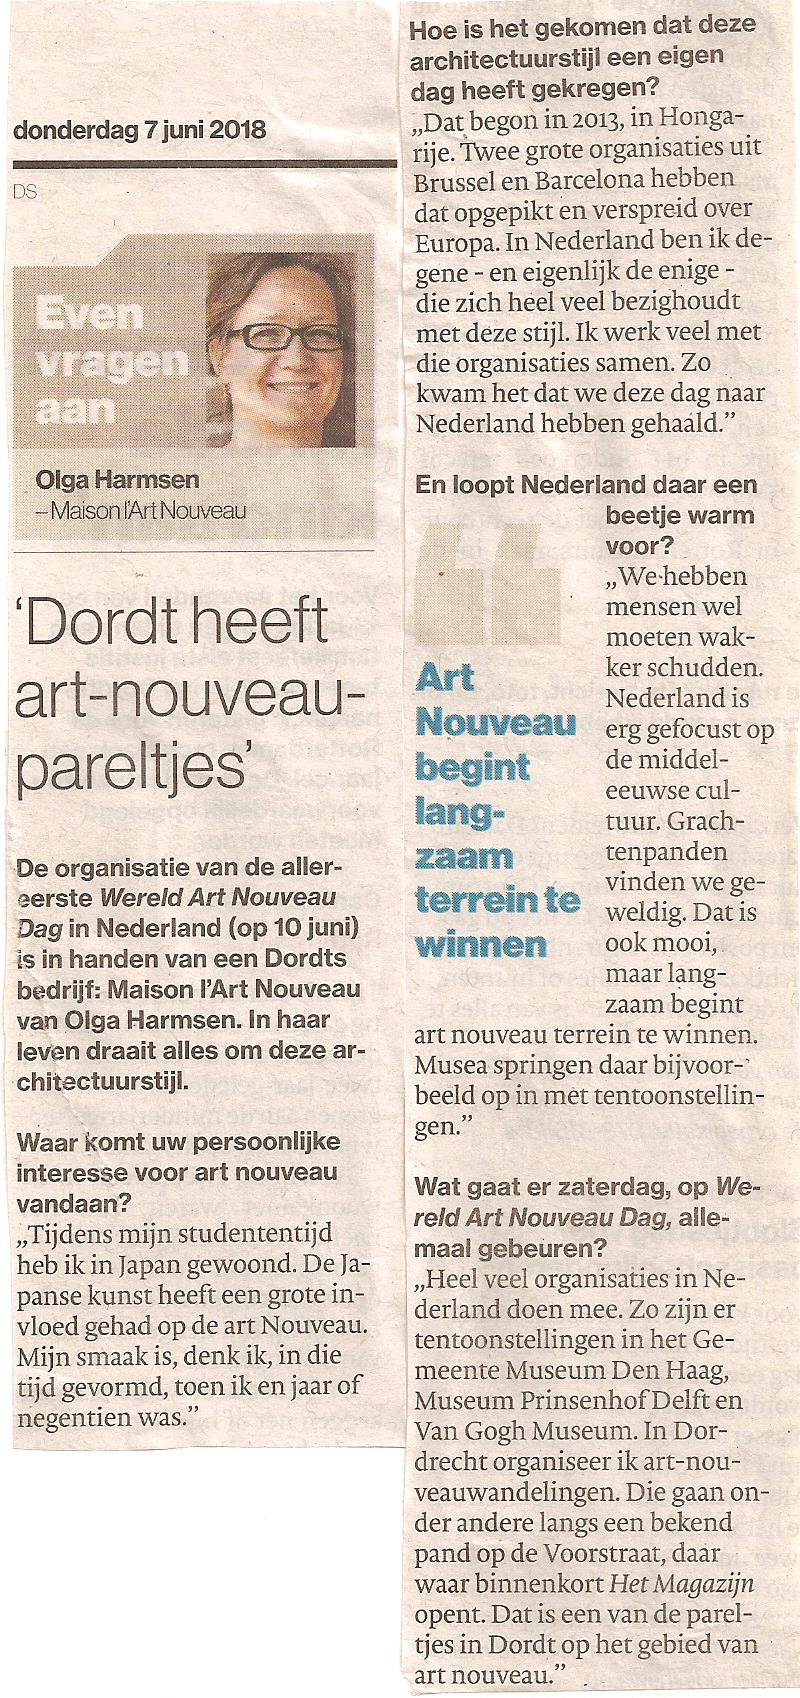 Interview met Olga Harmsen in AD de Dordtenaar over World Art Nouveau Day